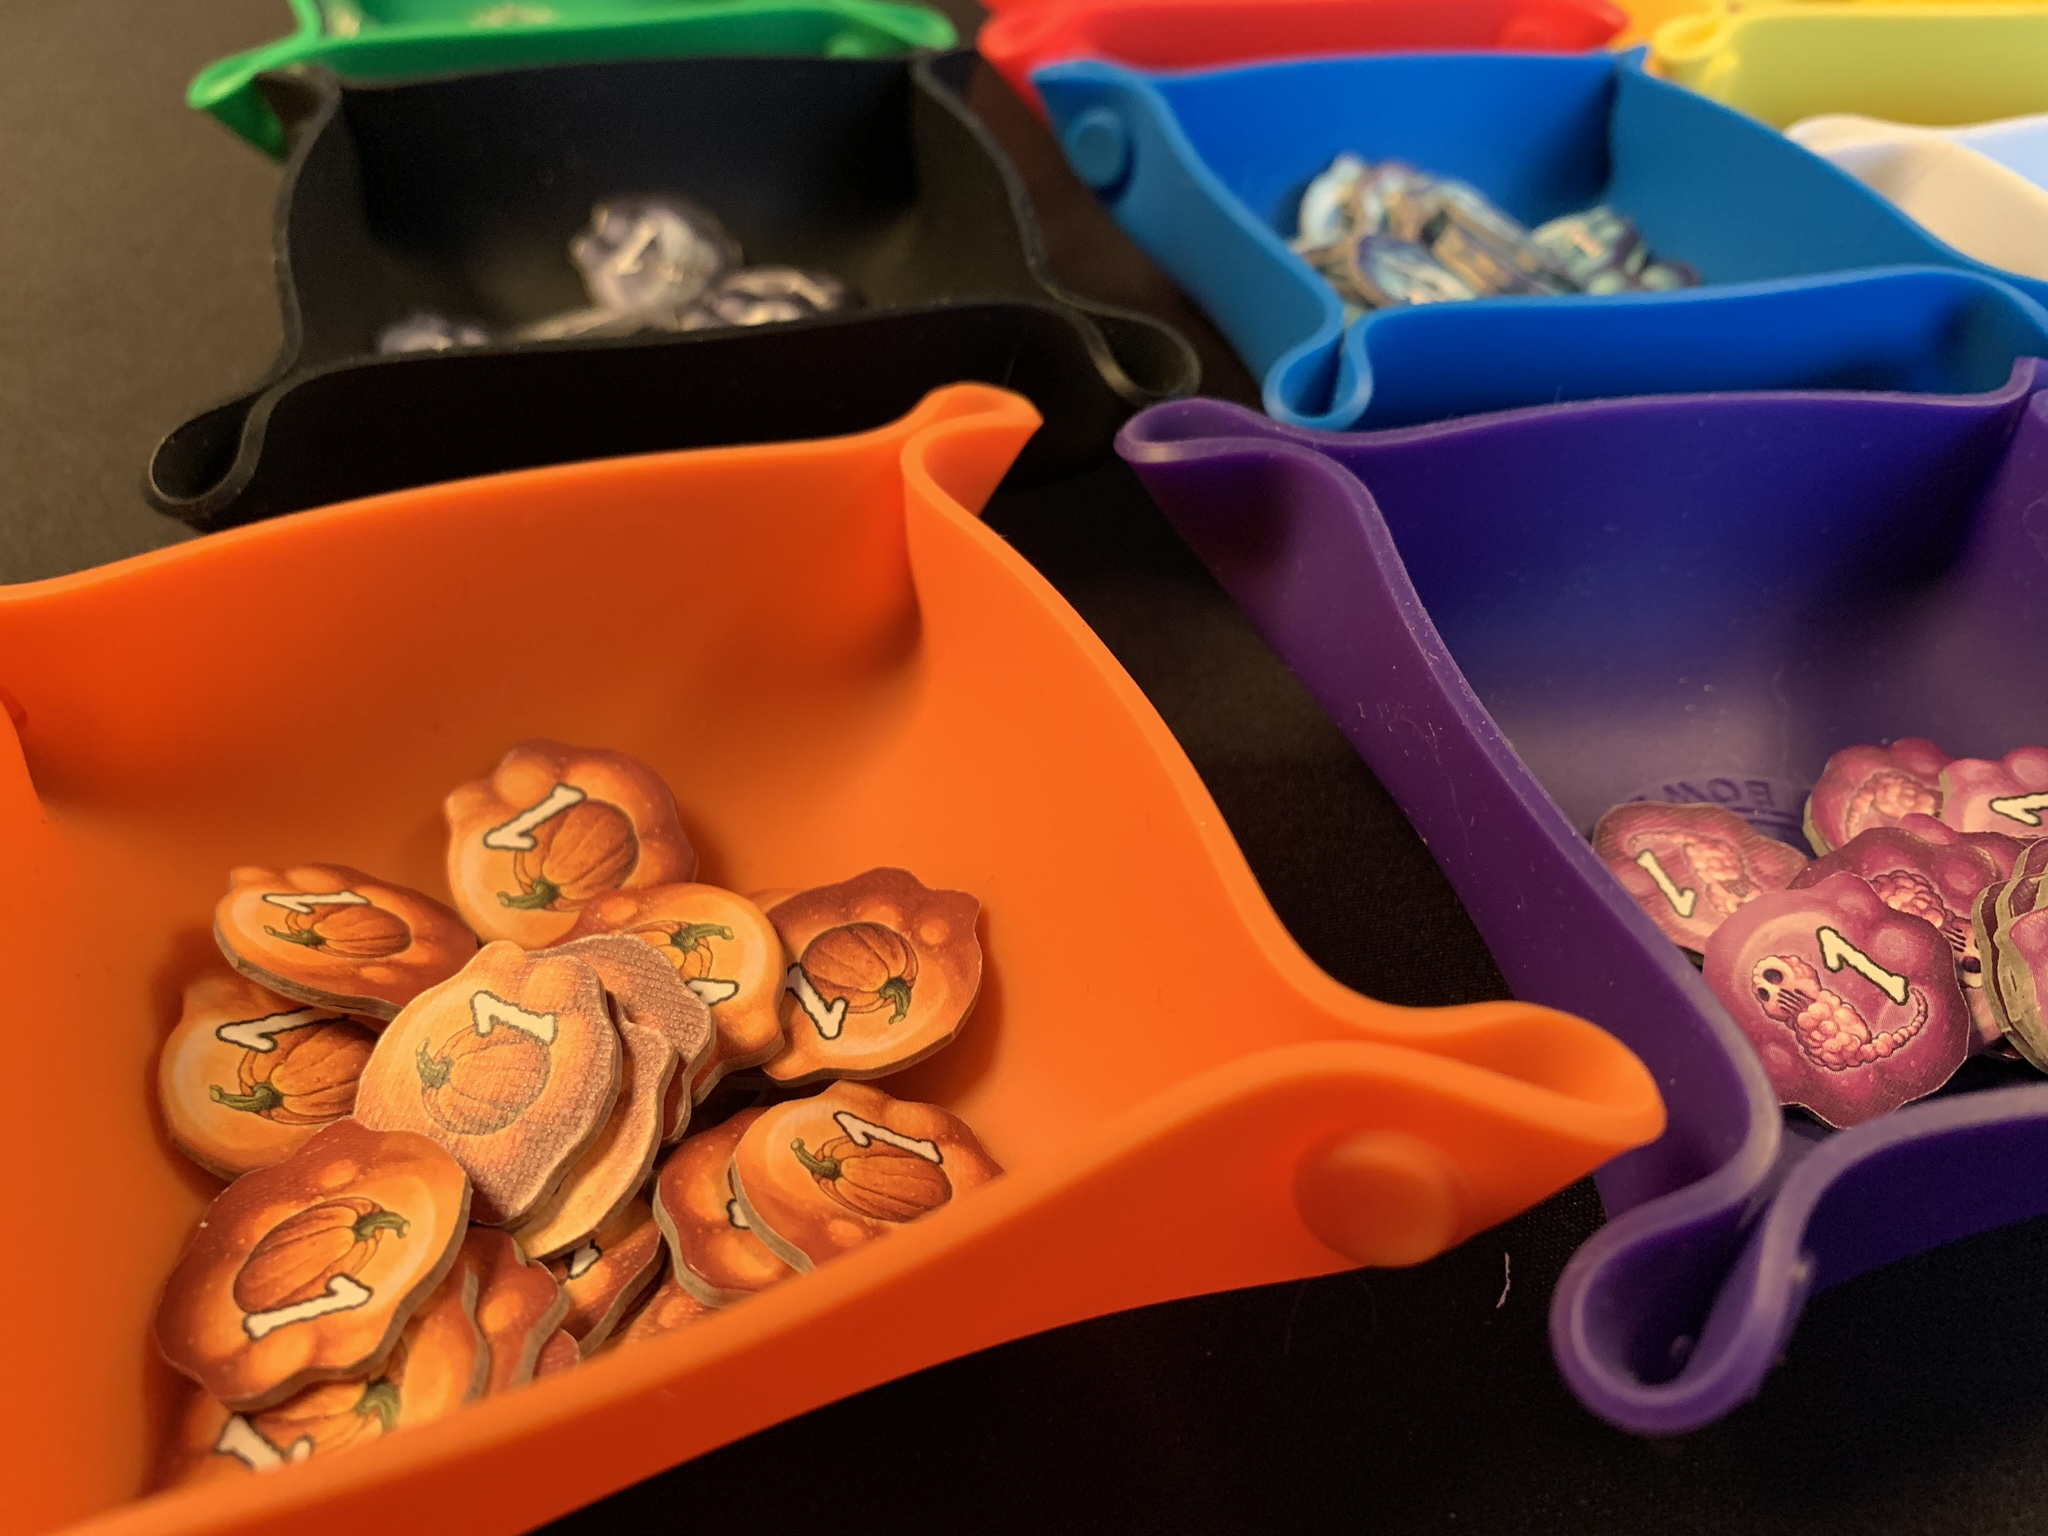 Tokens in the bit bowls from BGG